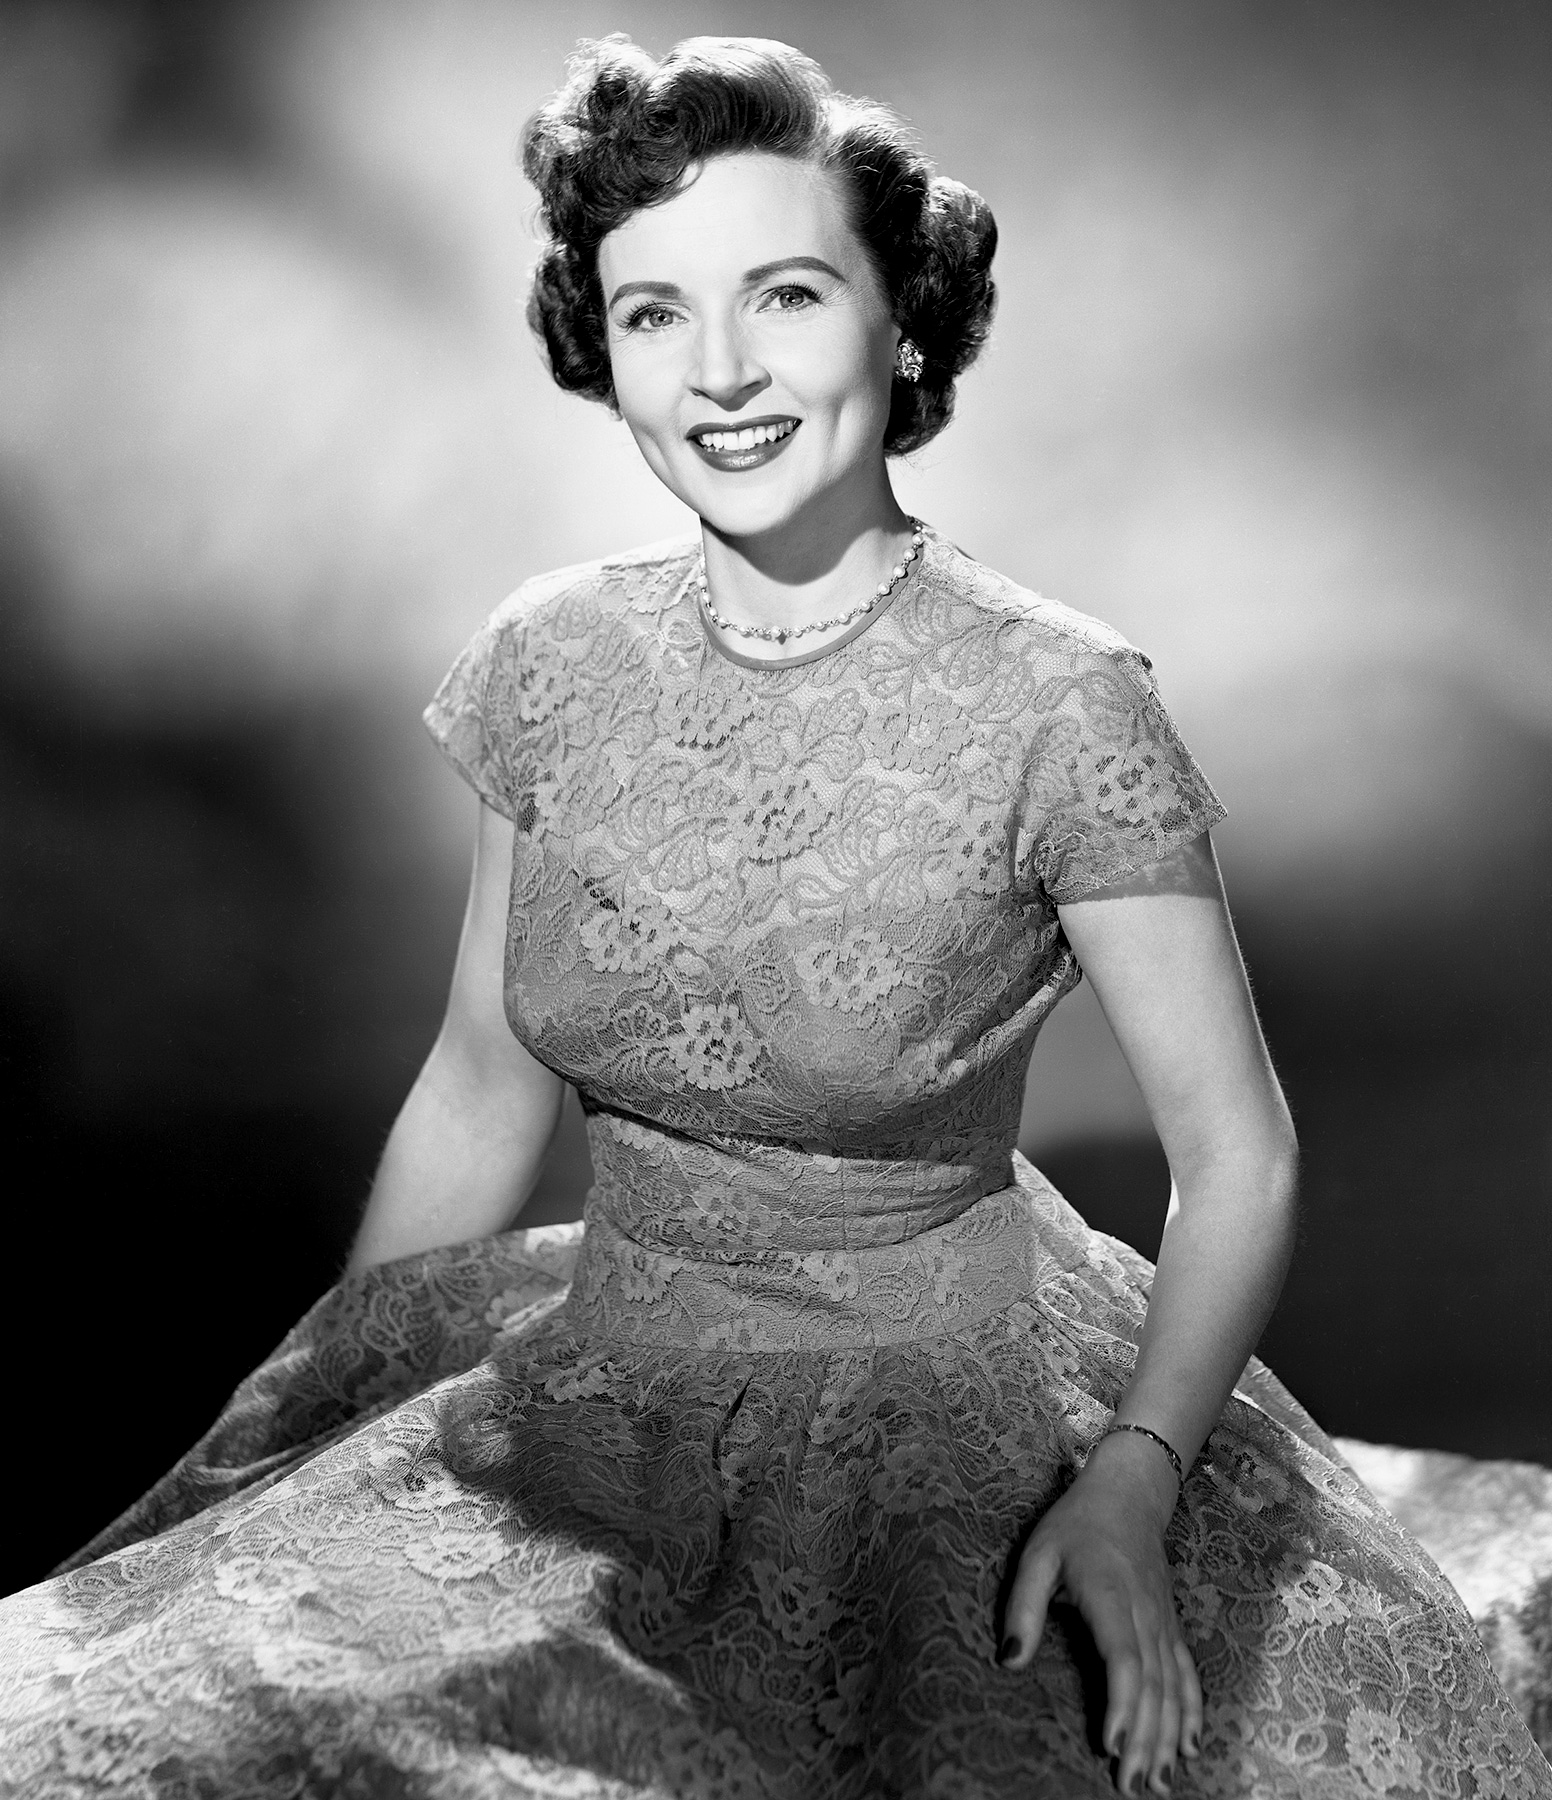 "Betty Marion White was born in 1922 in Oak Park, Illinois, and was once told by movie studios that she was too ""unphotogenic"" to land a role in Hollywood. So she turned her focus to radio where she got her start reading commercials and voicing parts."